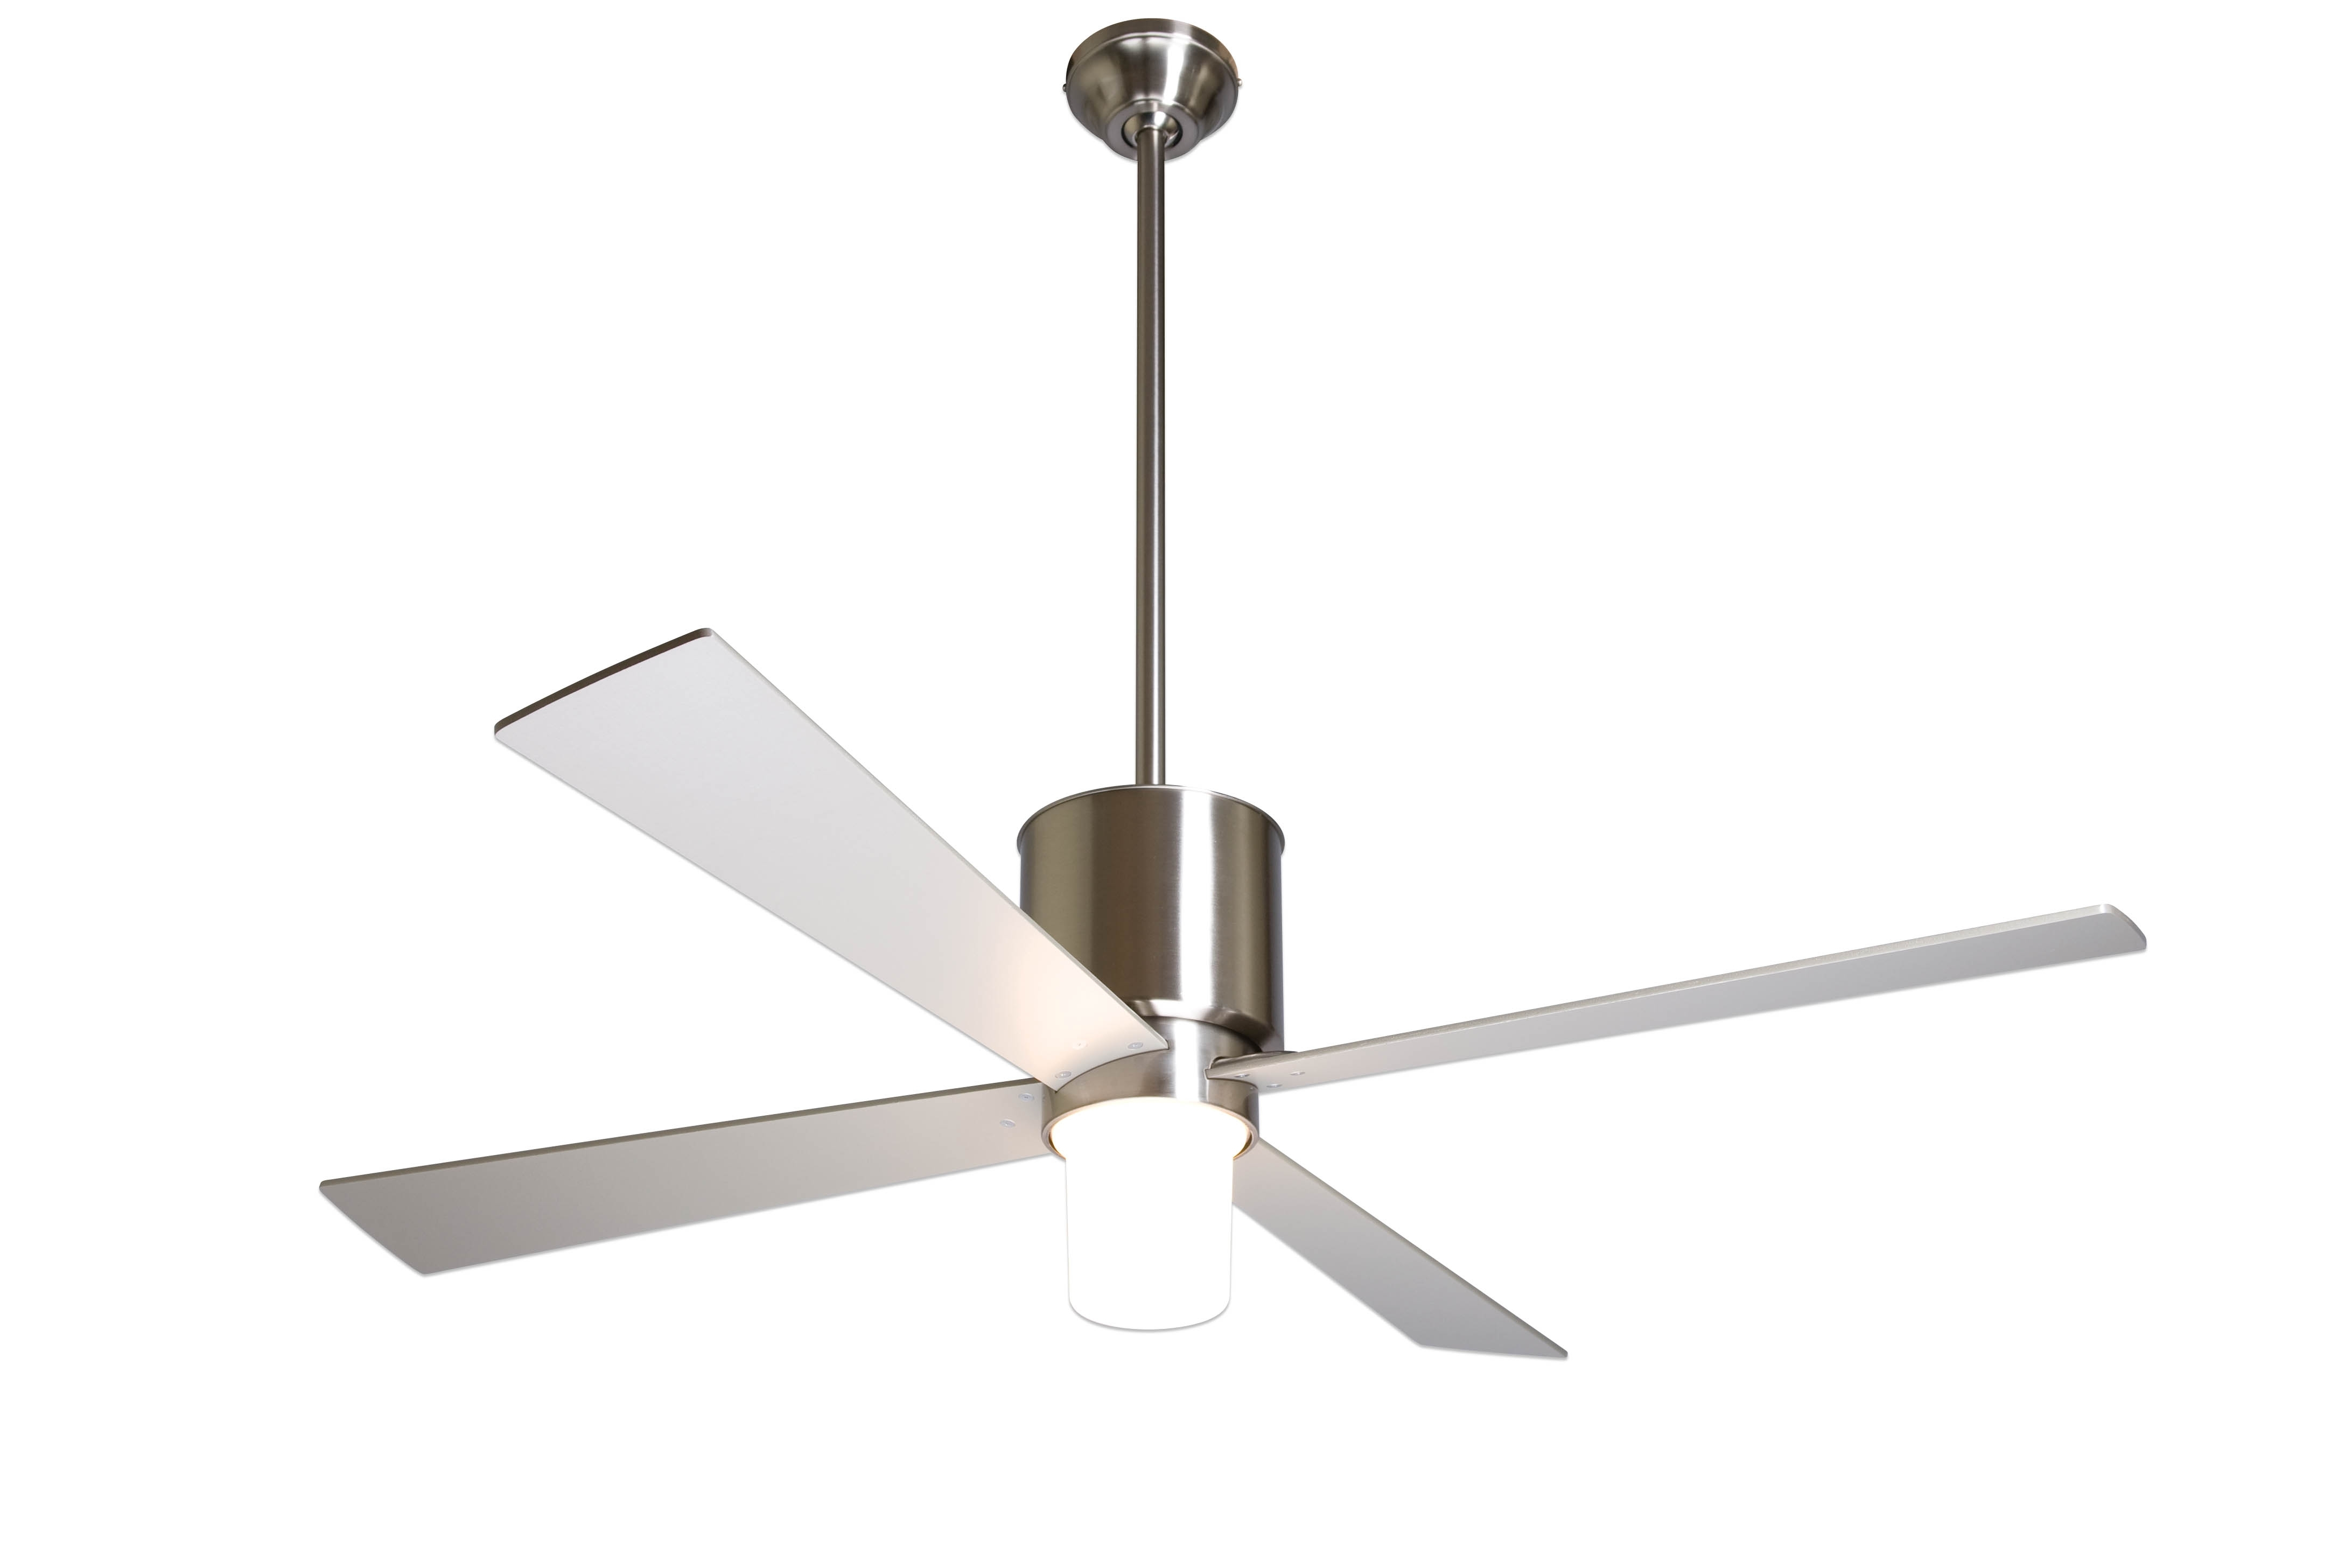 Lighting And Ceiling Fans With Most Up To Date Outdoor Ceiling Fans For Barns (Gallery 14 of 20)